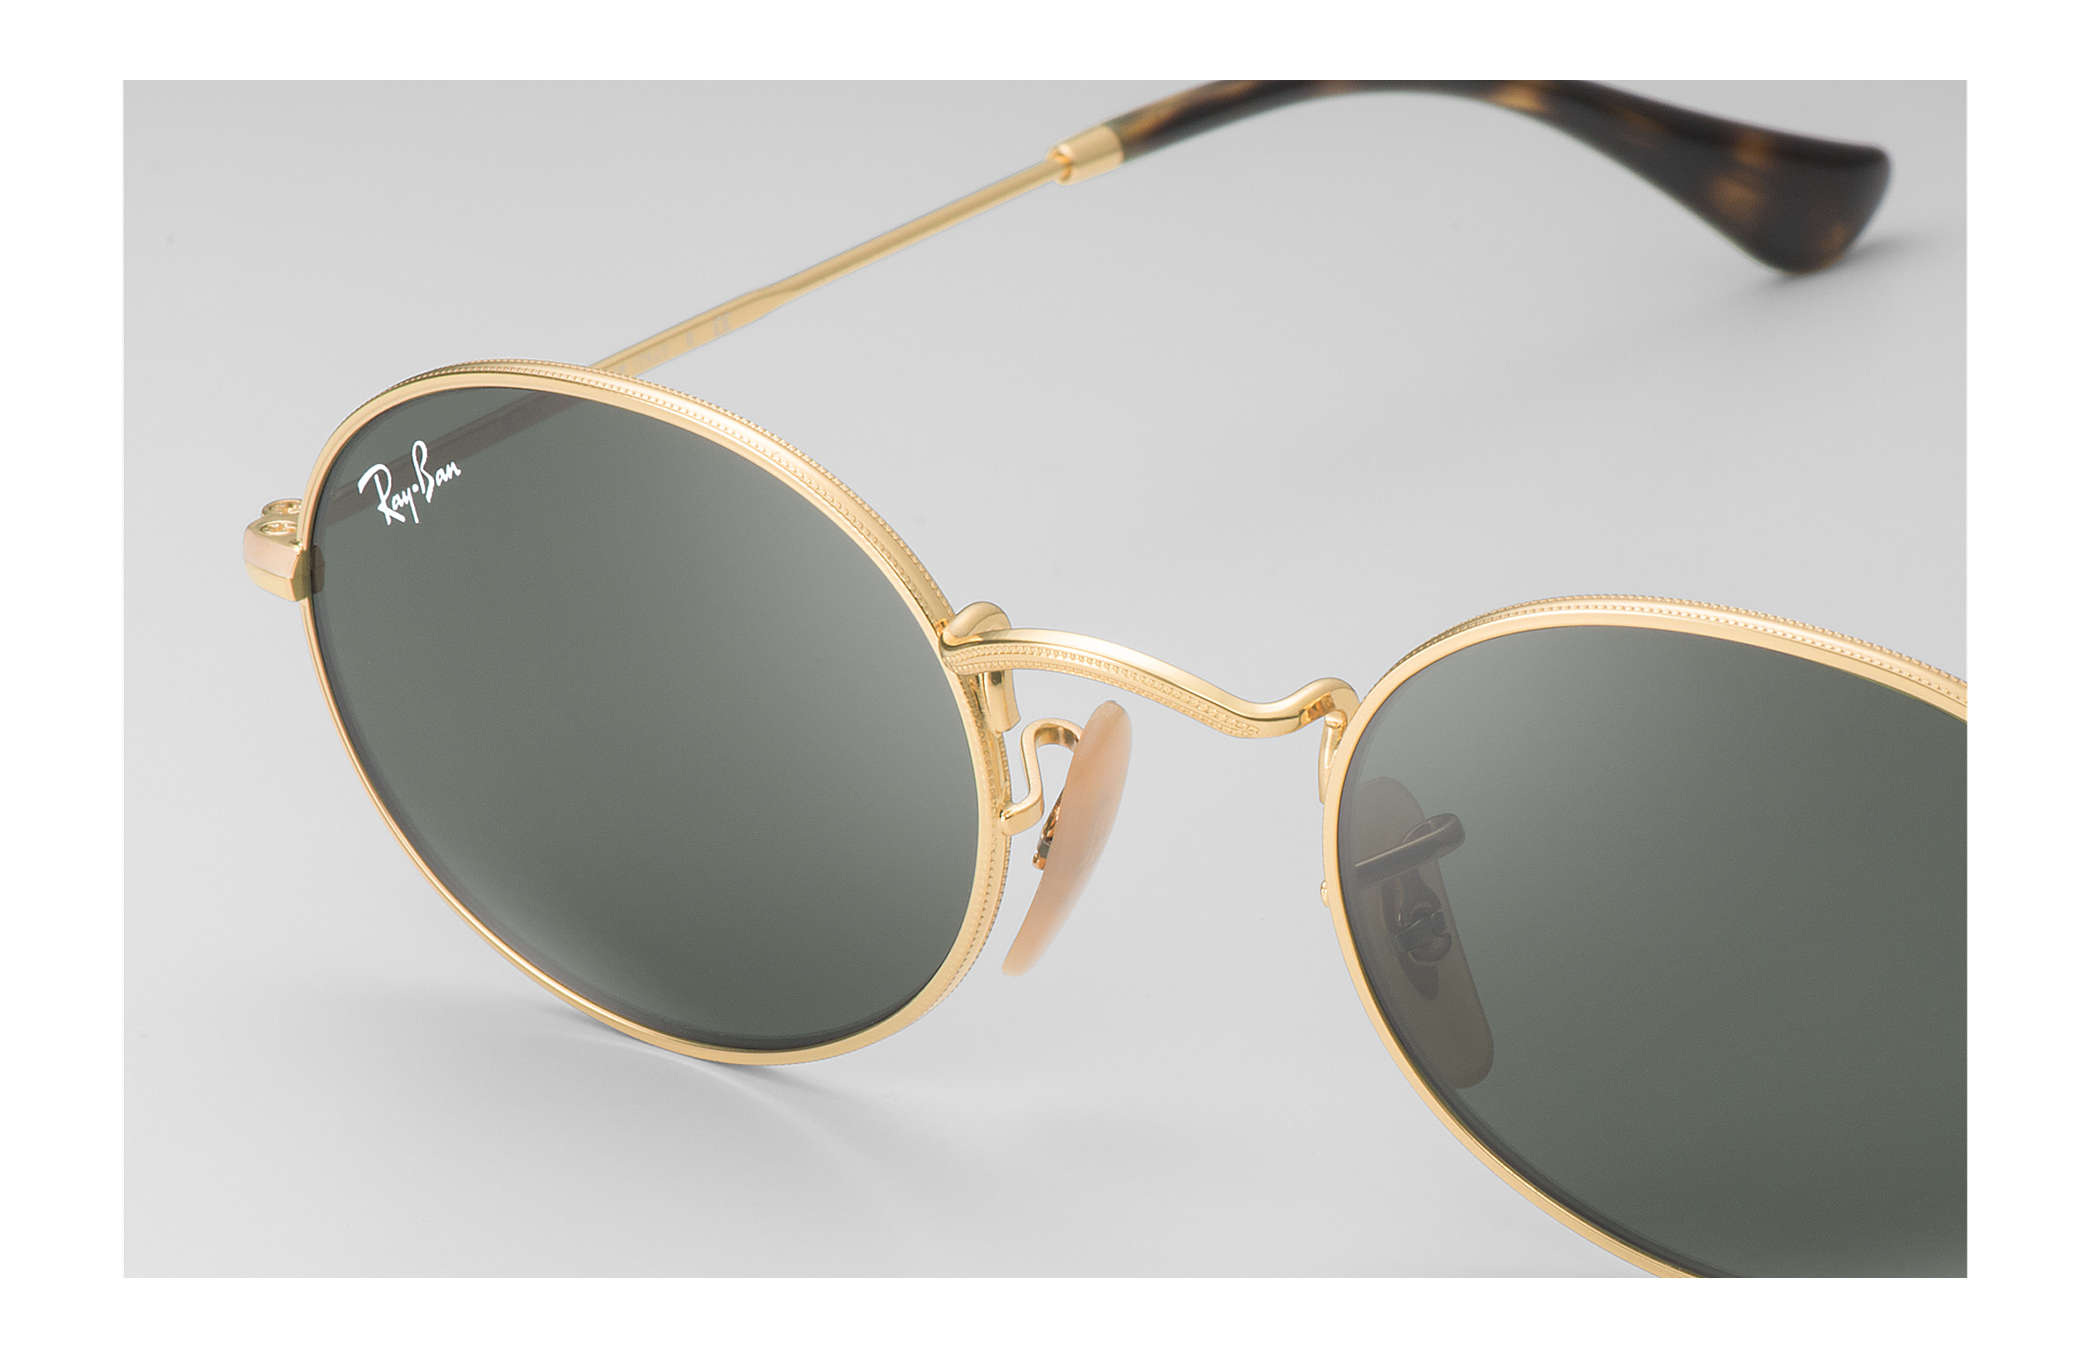 0bc48571078 Ray-ban Icon Oval Flat Lens Sunglasses - Bitterroot Public Library